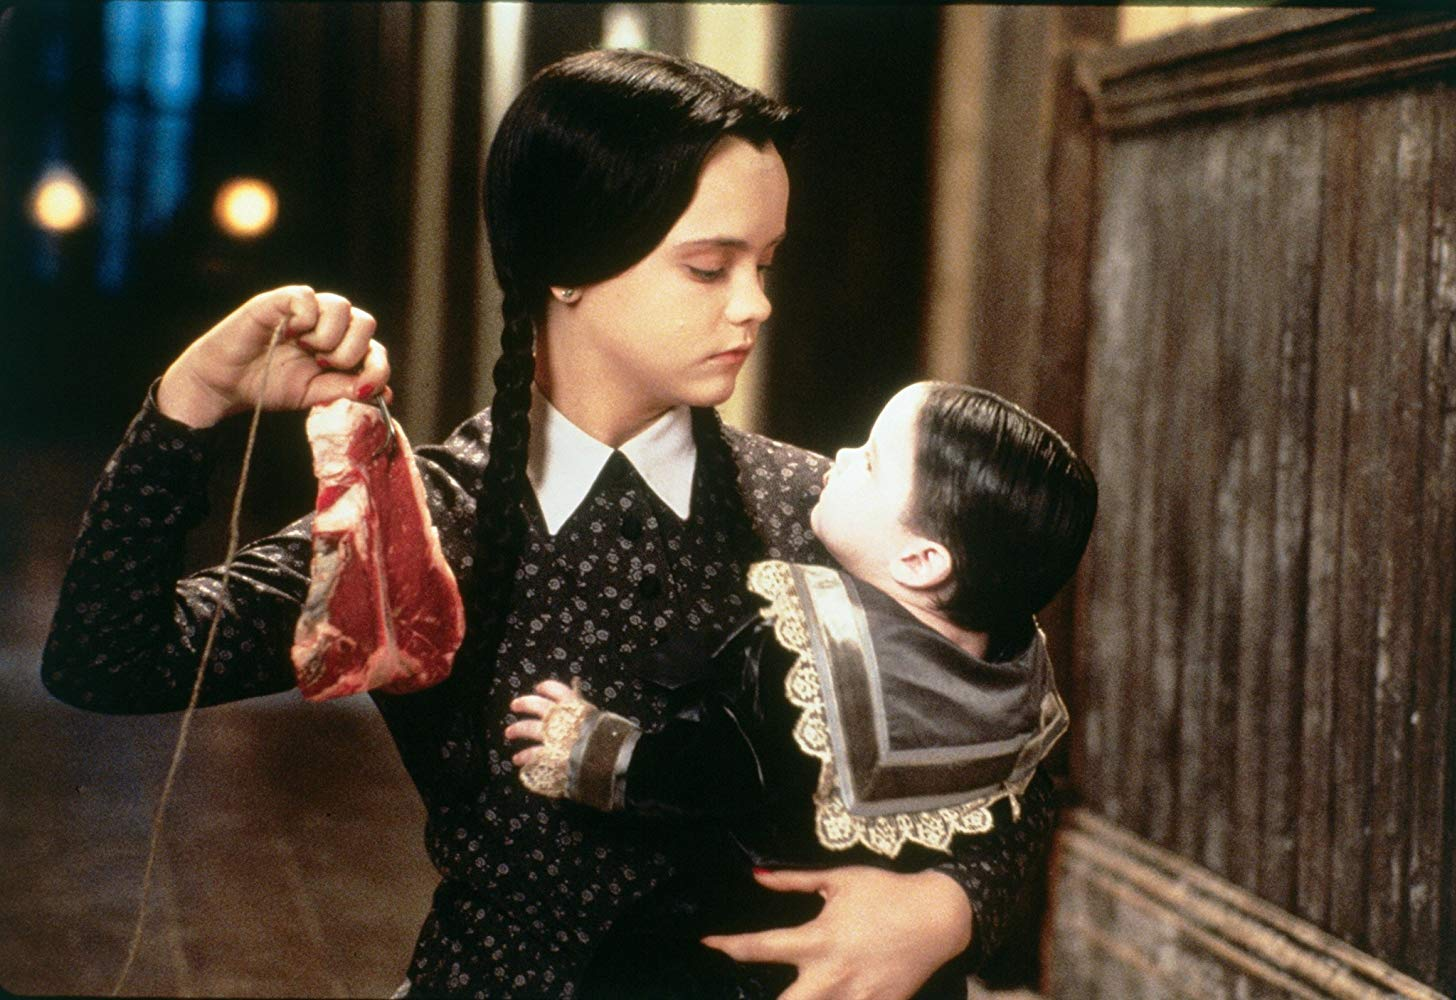 """Wednesday Addams playing with her little brother in """"Addams Family Values."""""""